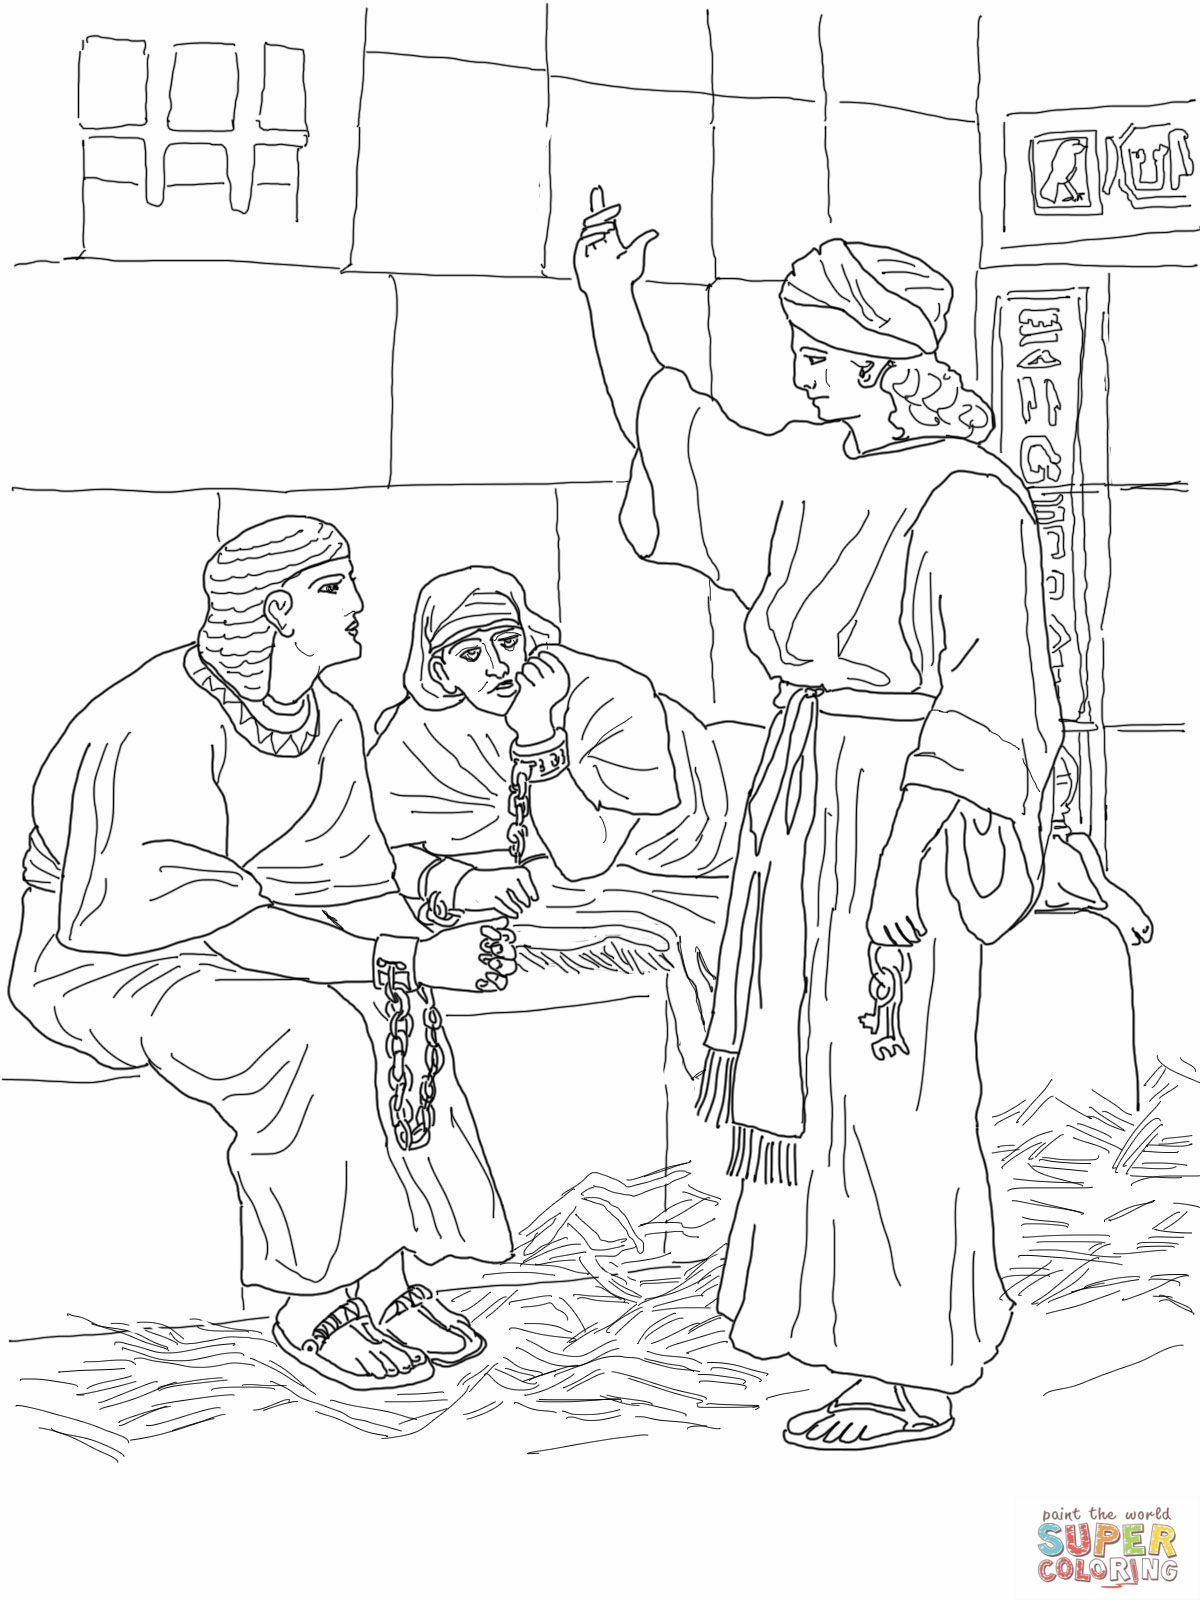 Sunday School Coloring Pages Joseph. 3 joseph in prison coloring page jpg 1200 1600  Sunday SchoolPrintablesCraft pixels Coloring